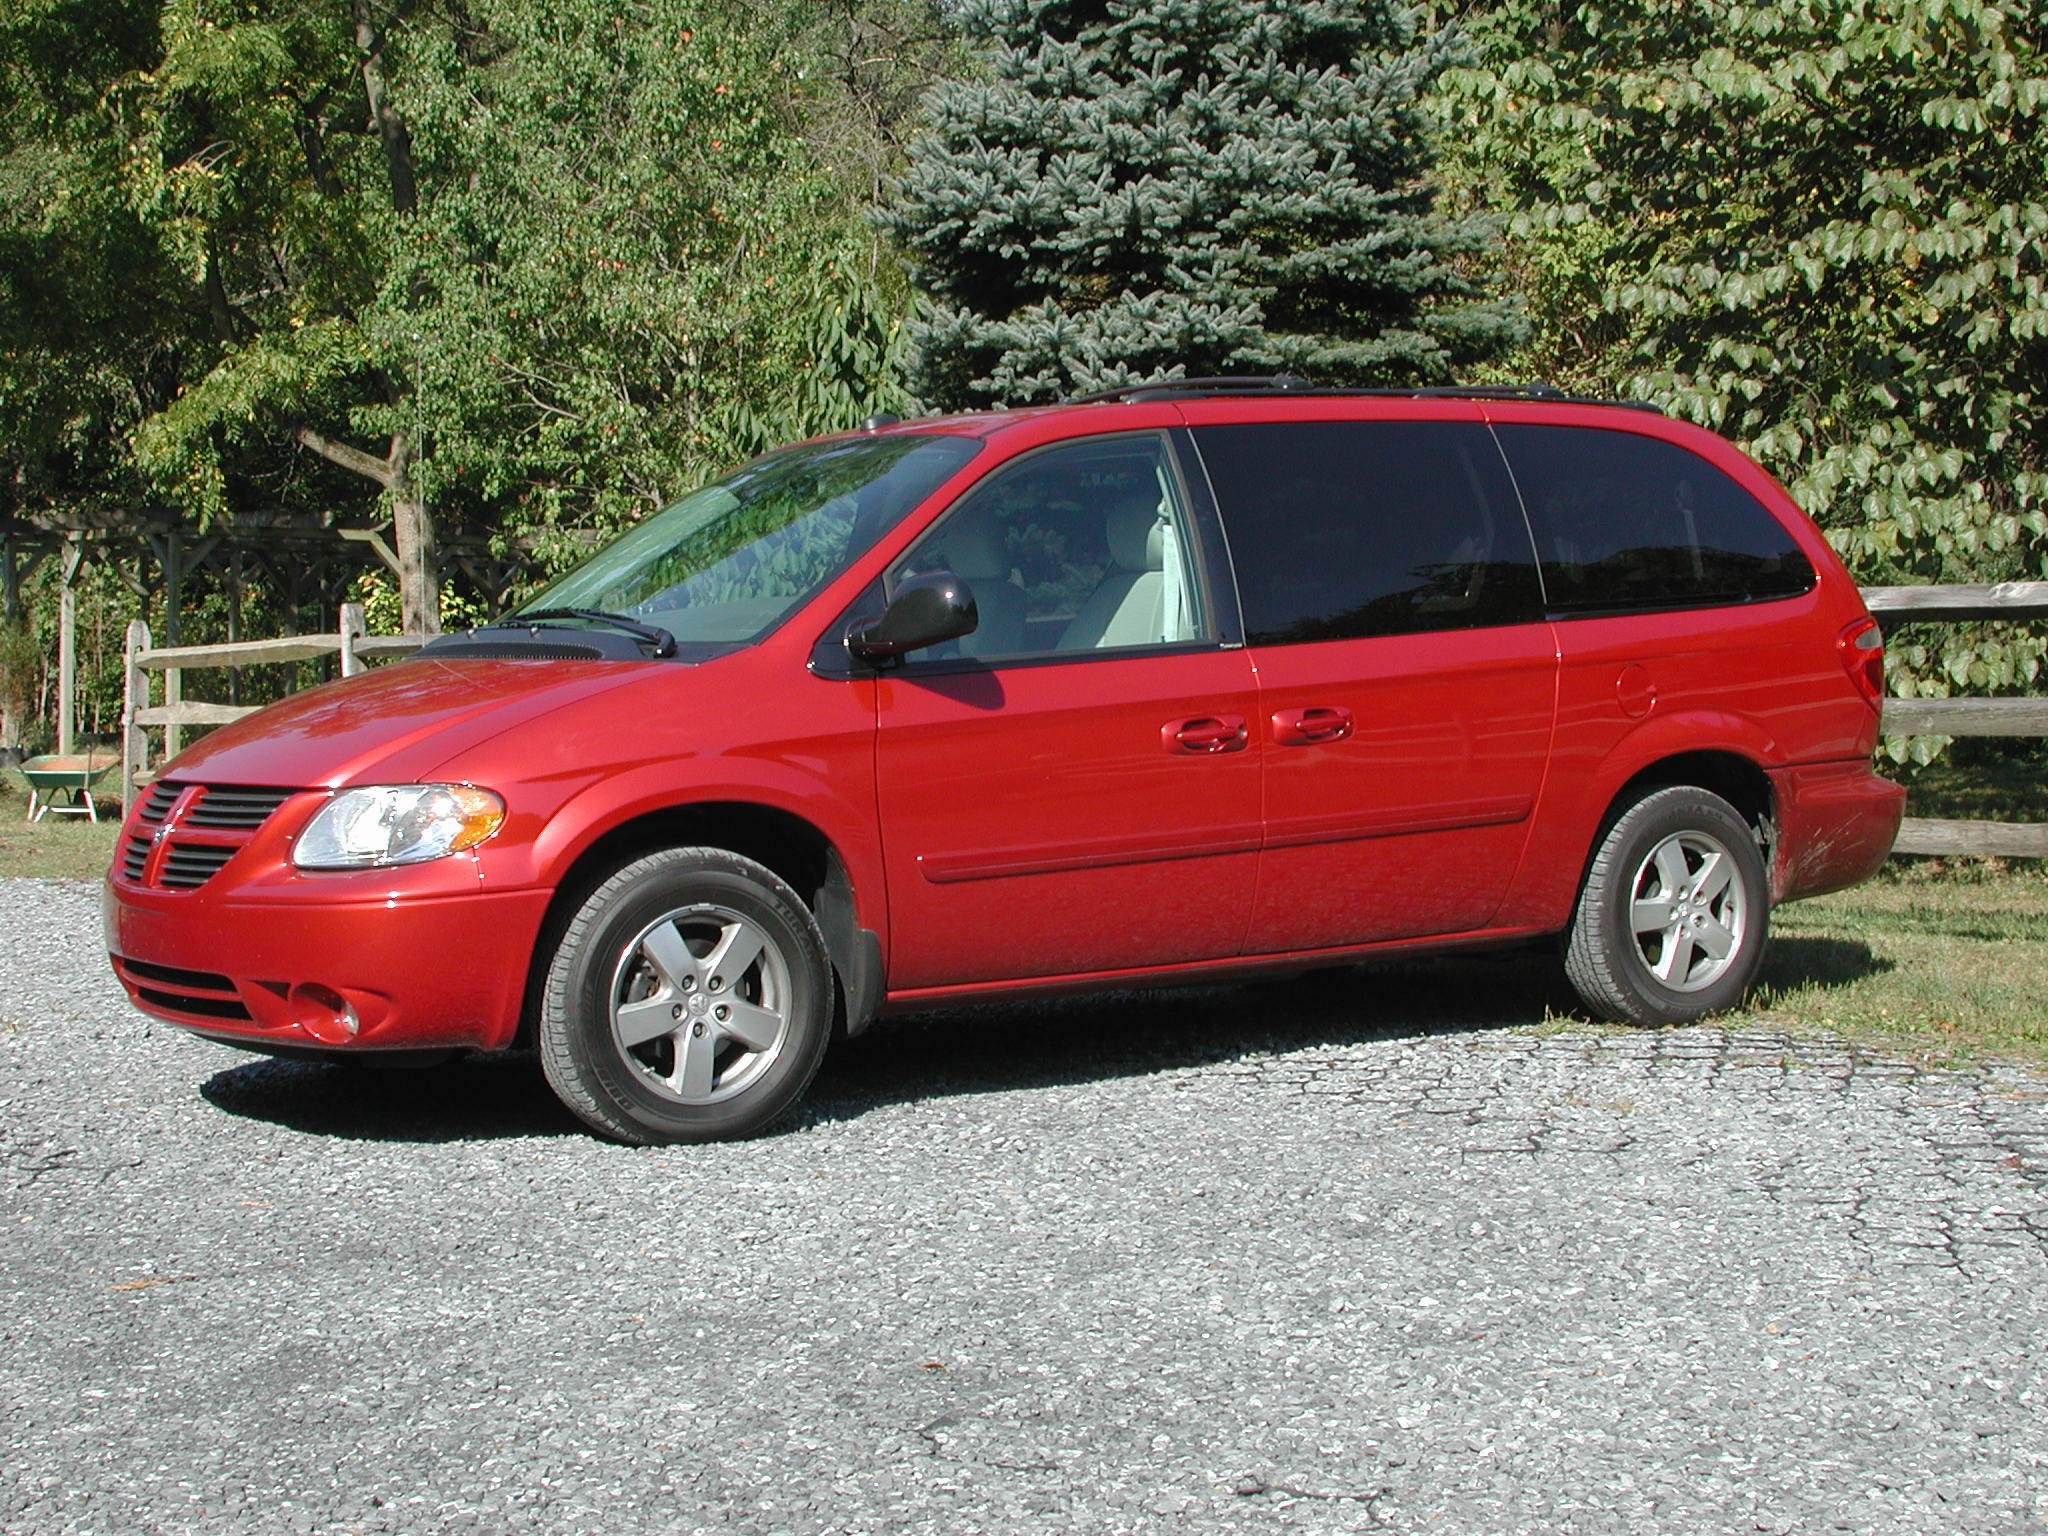 2006 dodge grand caravan sxt review. Cars Review. Best American Auto & Cars Review